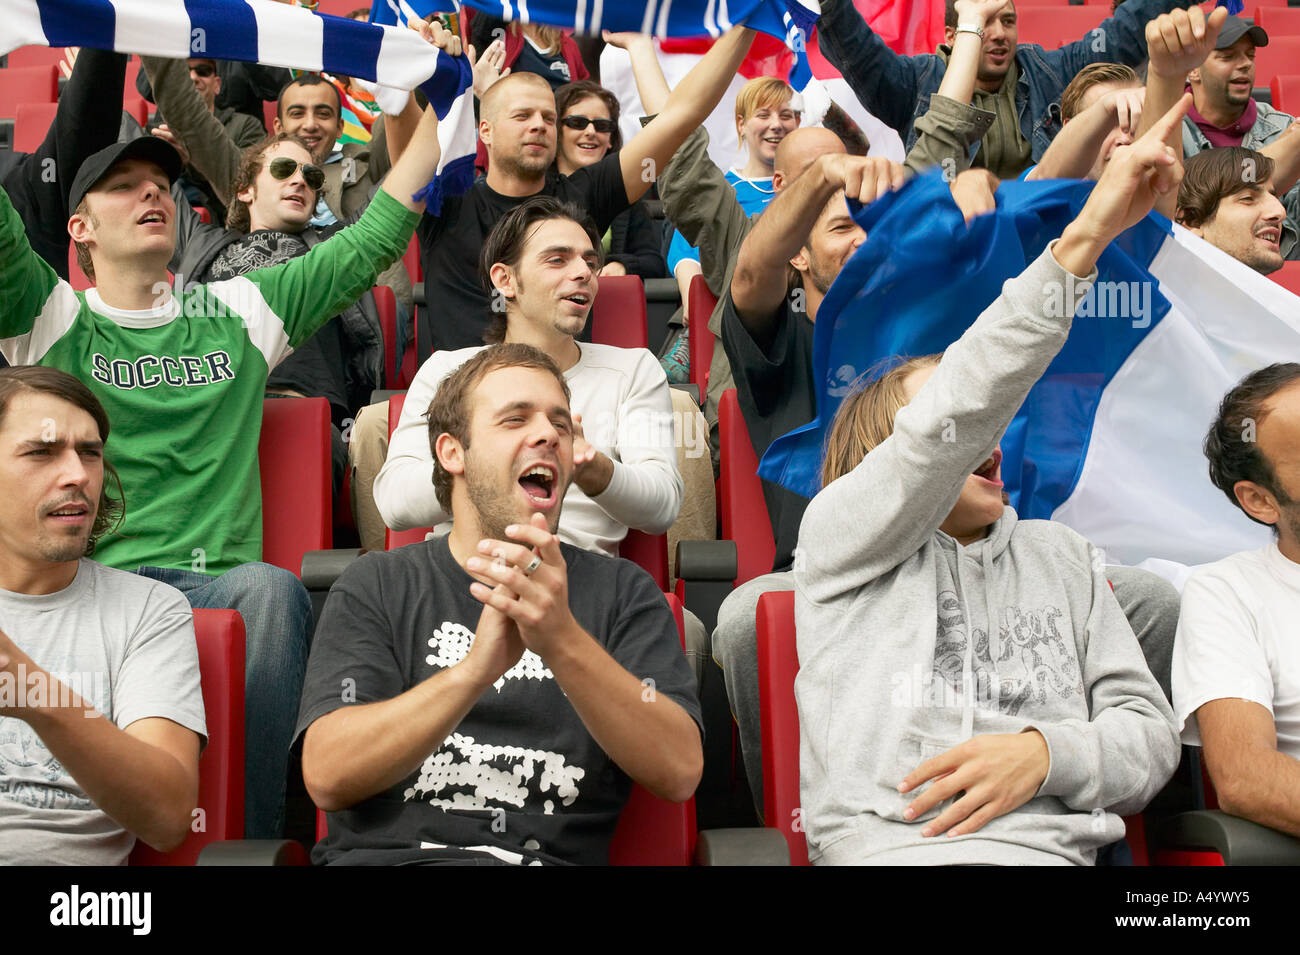 Crowd at football match - Stock Image